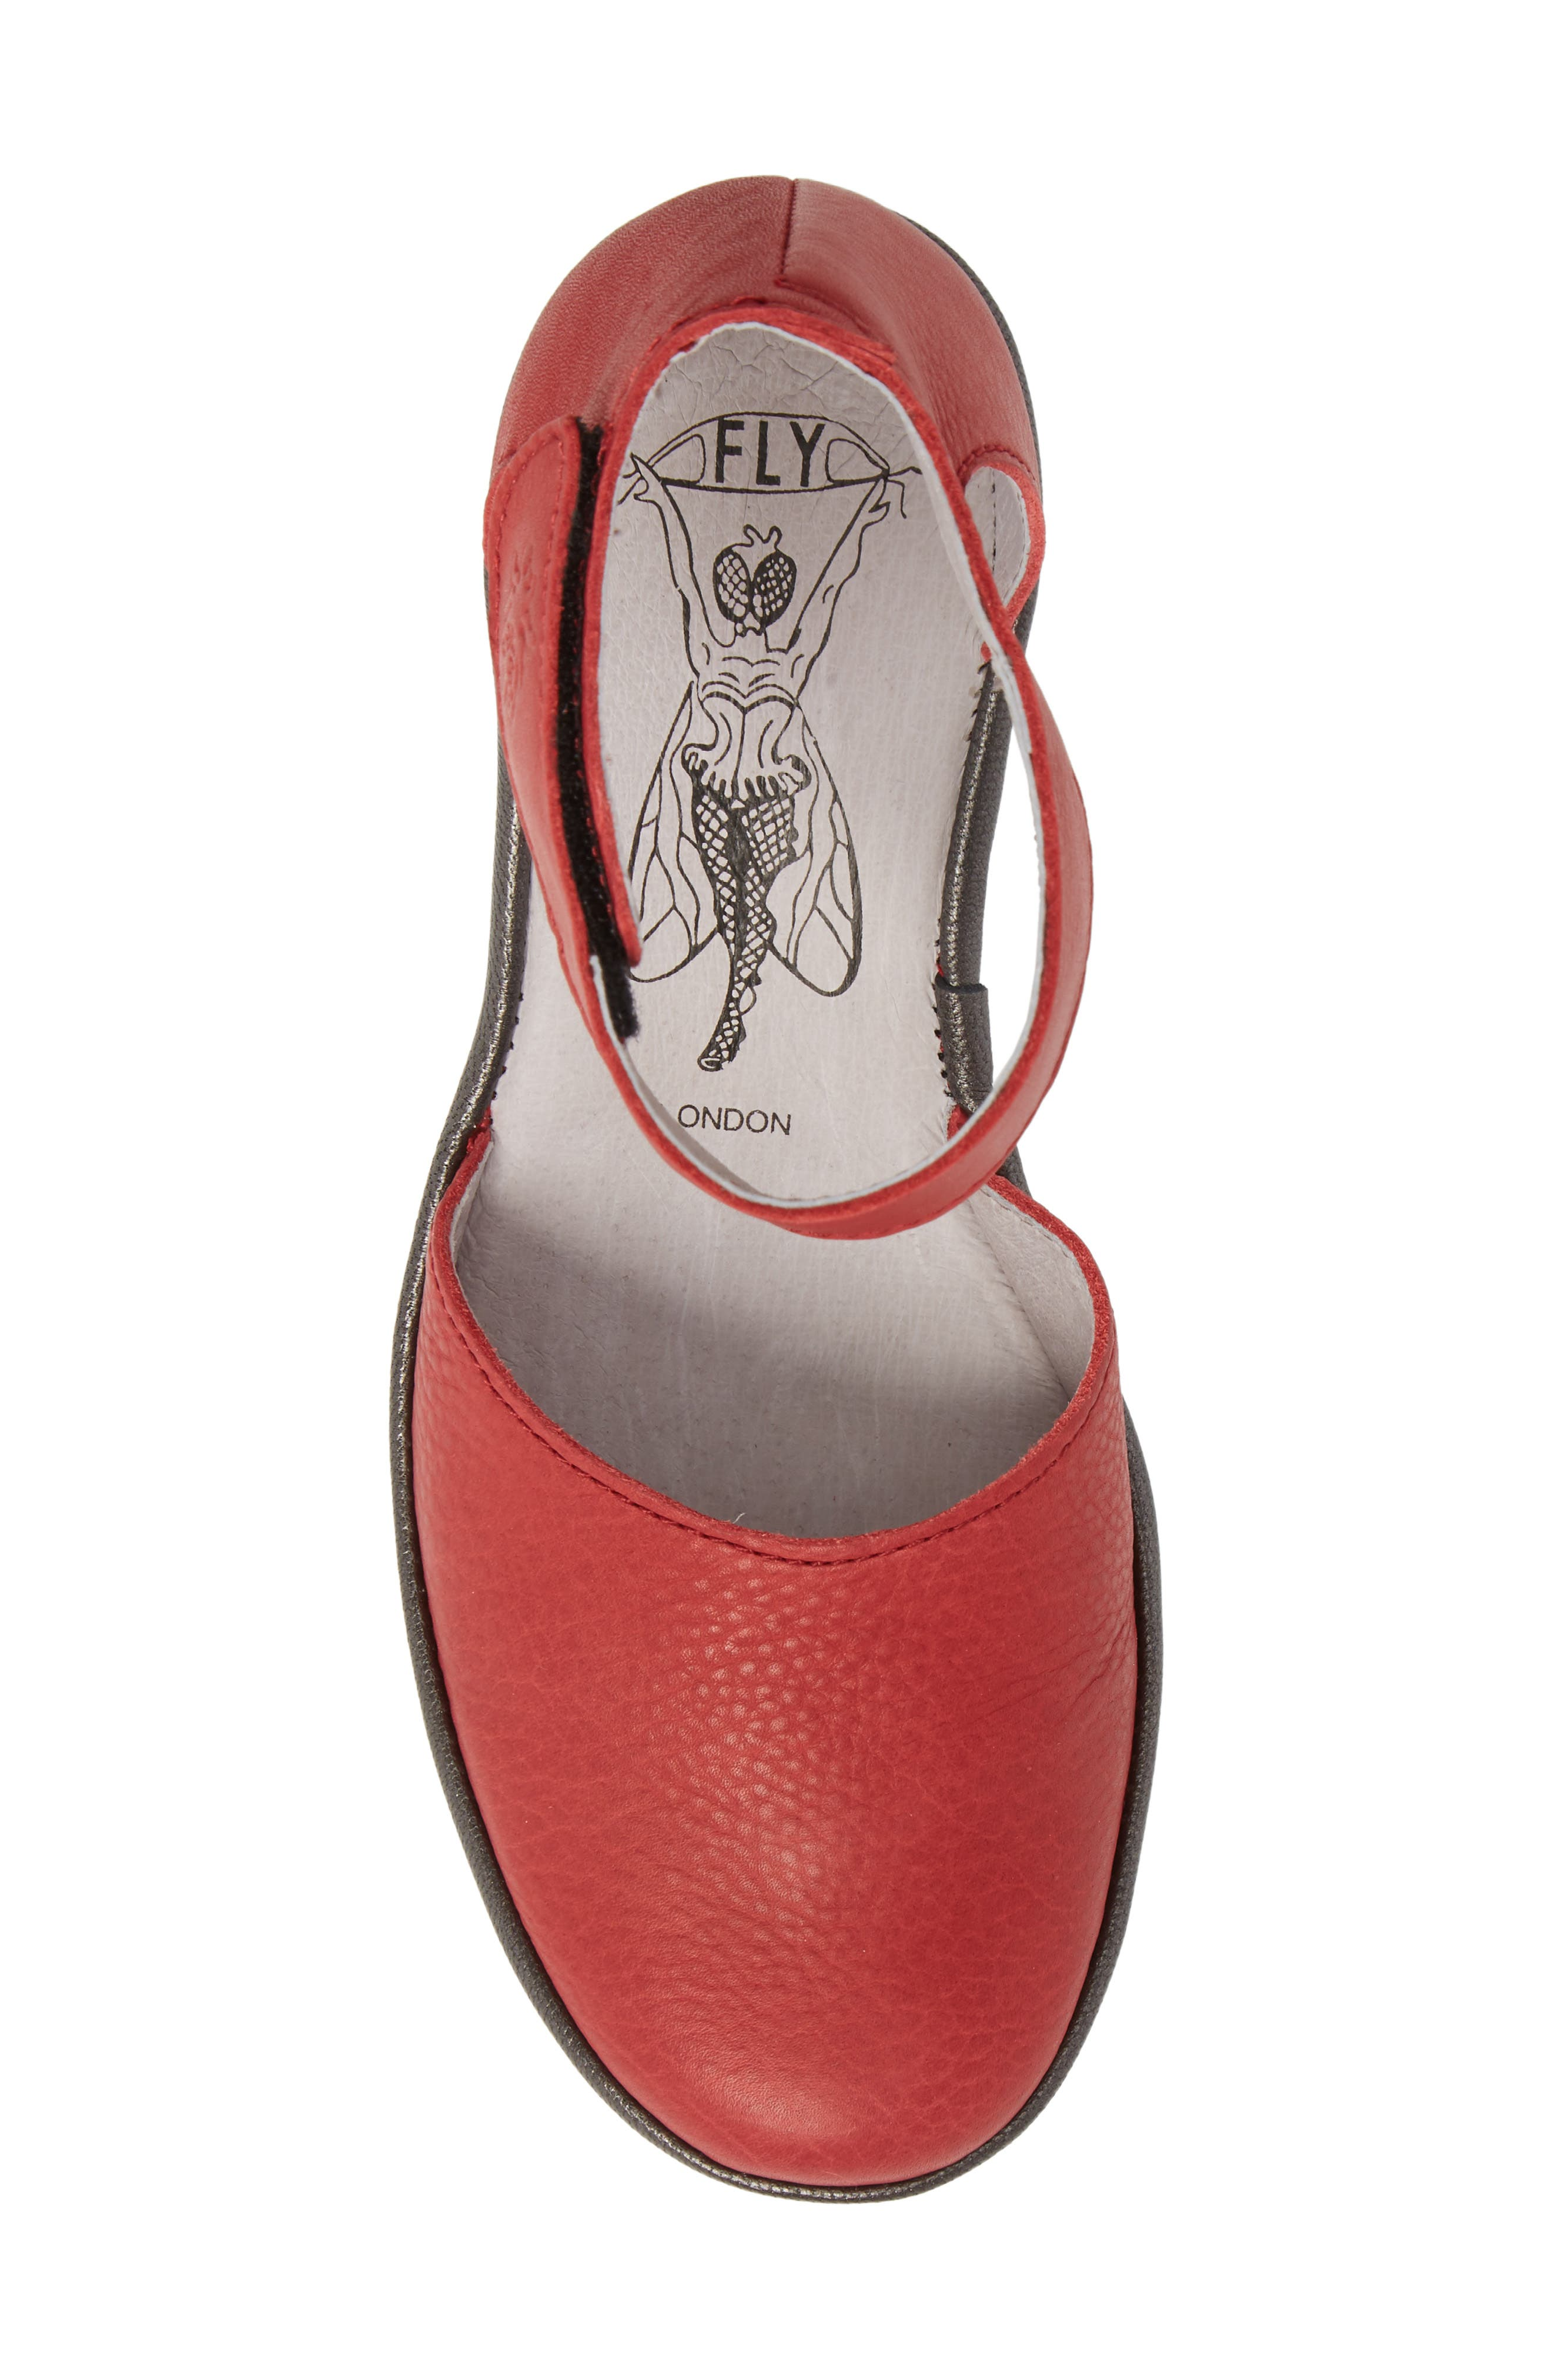 Yand Wedge Pump,                             Alternate thumbnail 5, color,                             RED/ OFF WHITE BRITO LEATHER